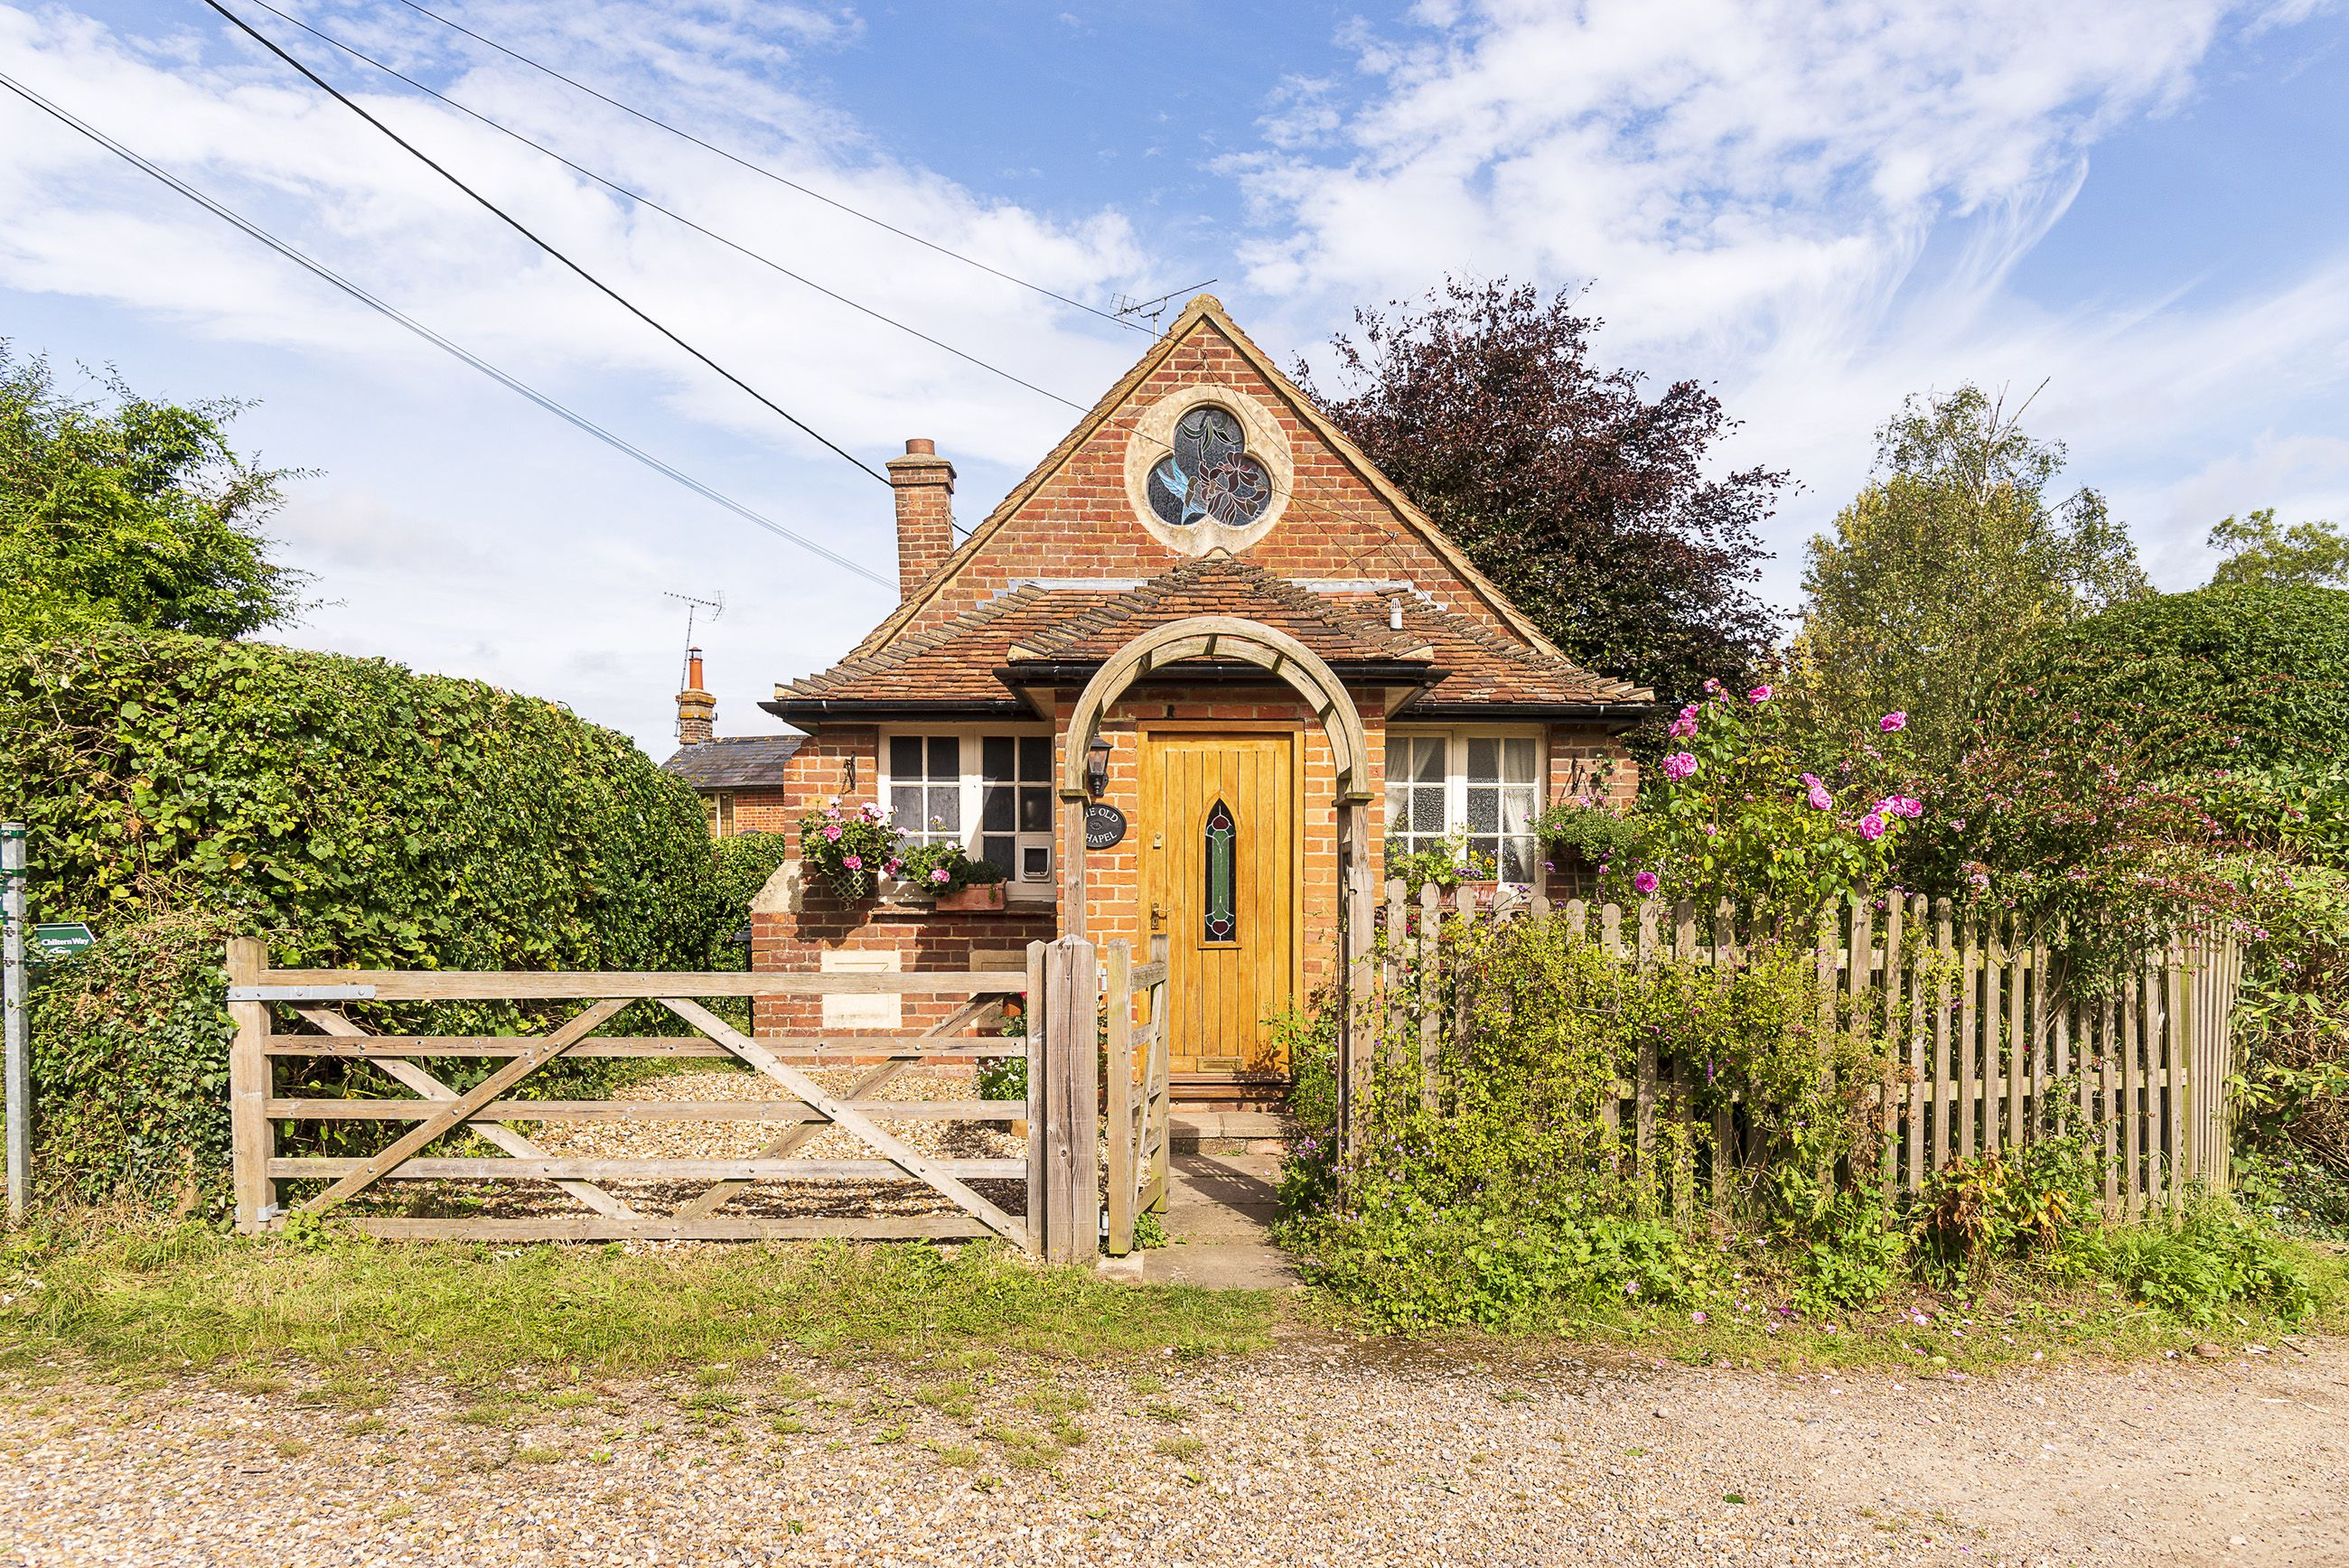 Quaint one-bedroom house is on sale for £425,000 in Oxfordshire